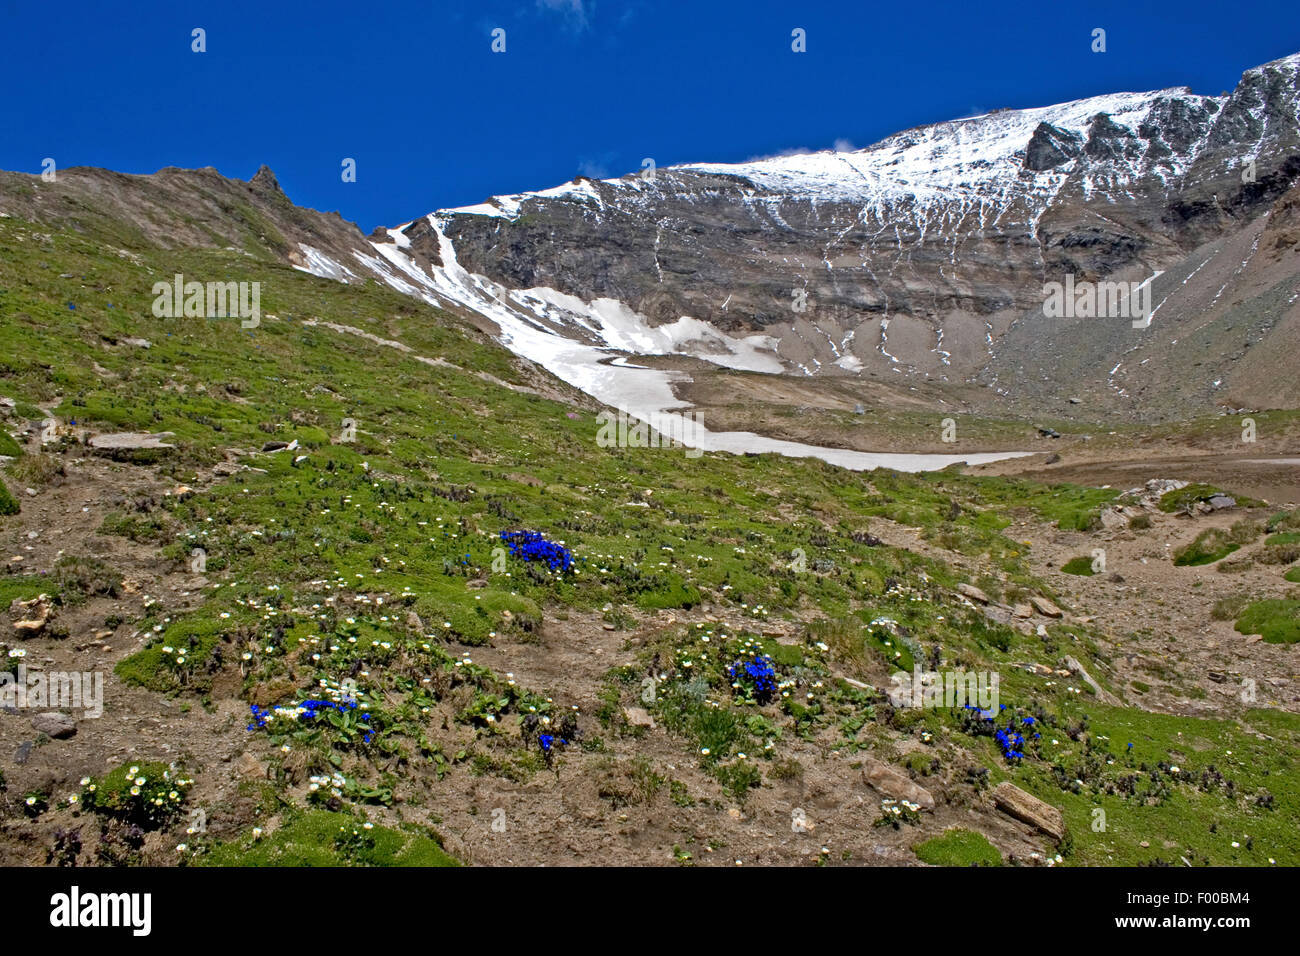 gentian family (Gentianaceae), flowering gentianas at the Grossglockner, Austria, Hohe Tauern National Park - Stock Image